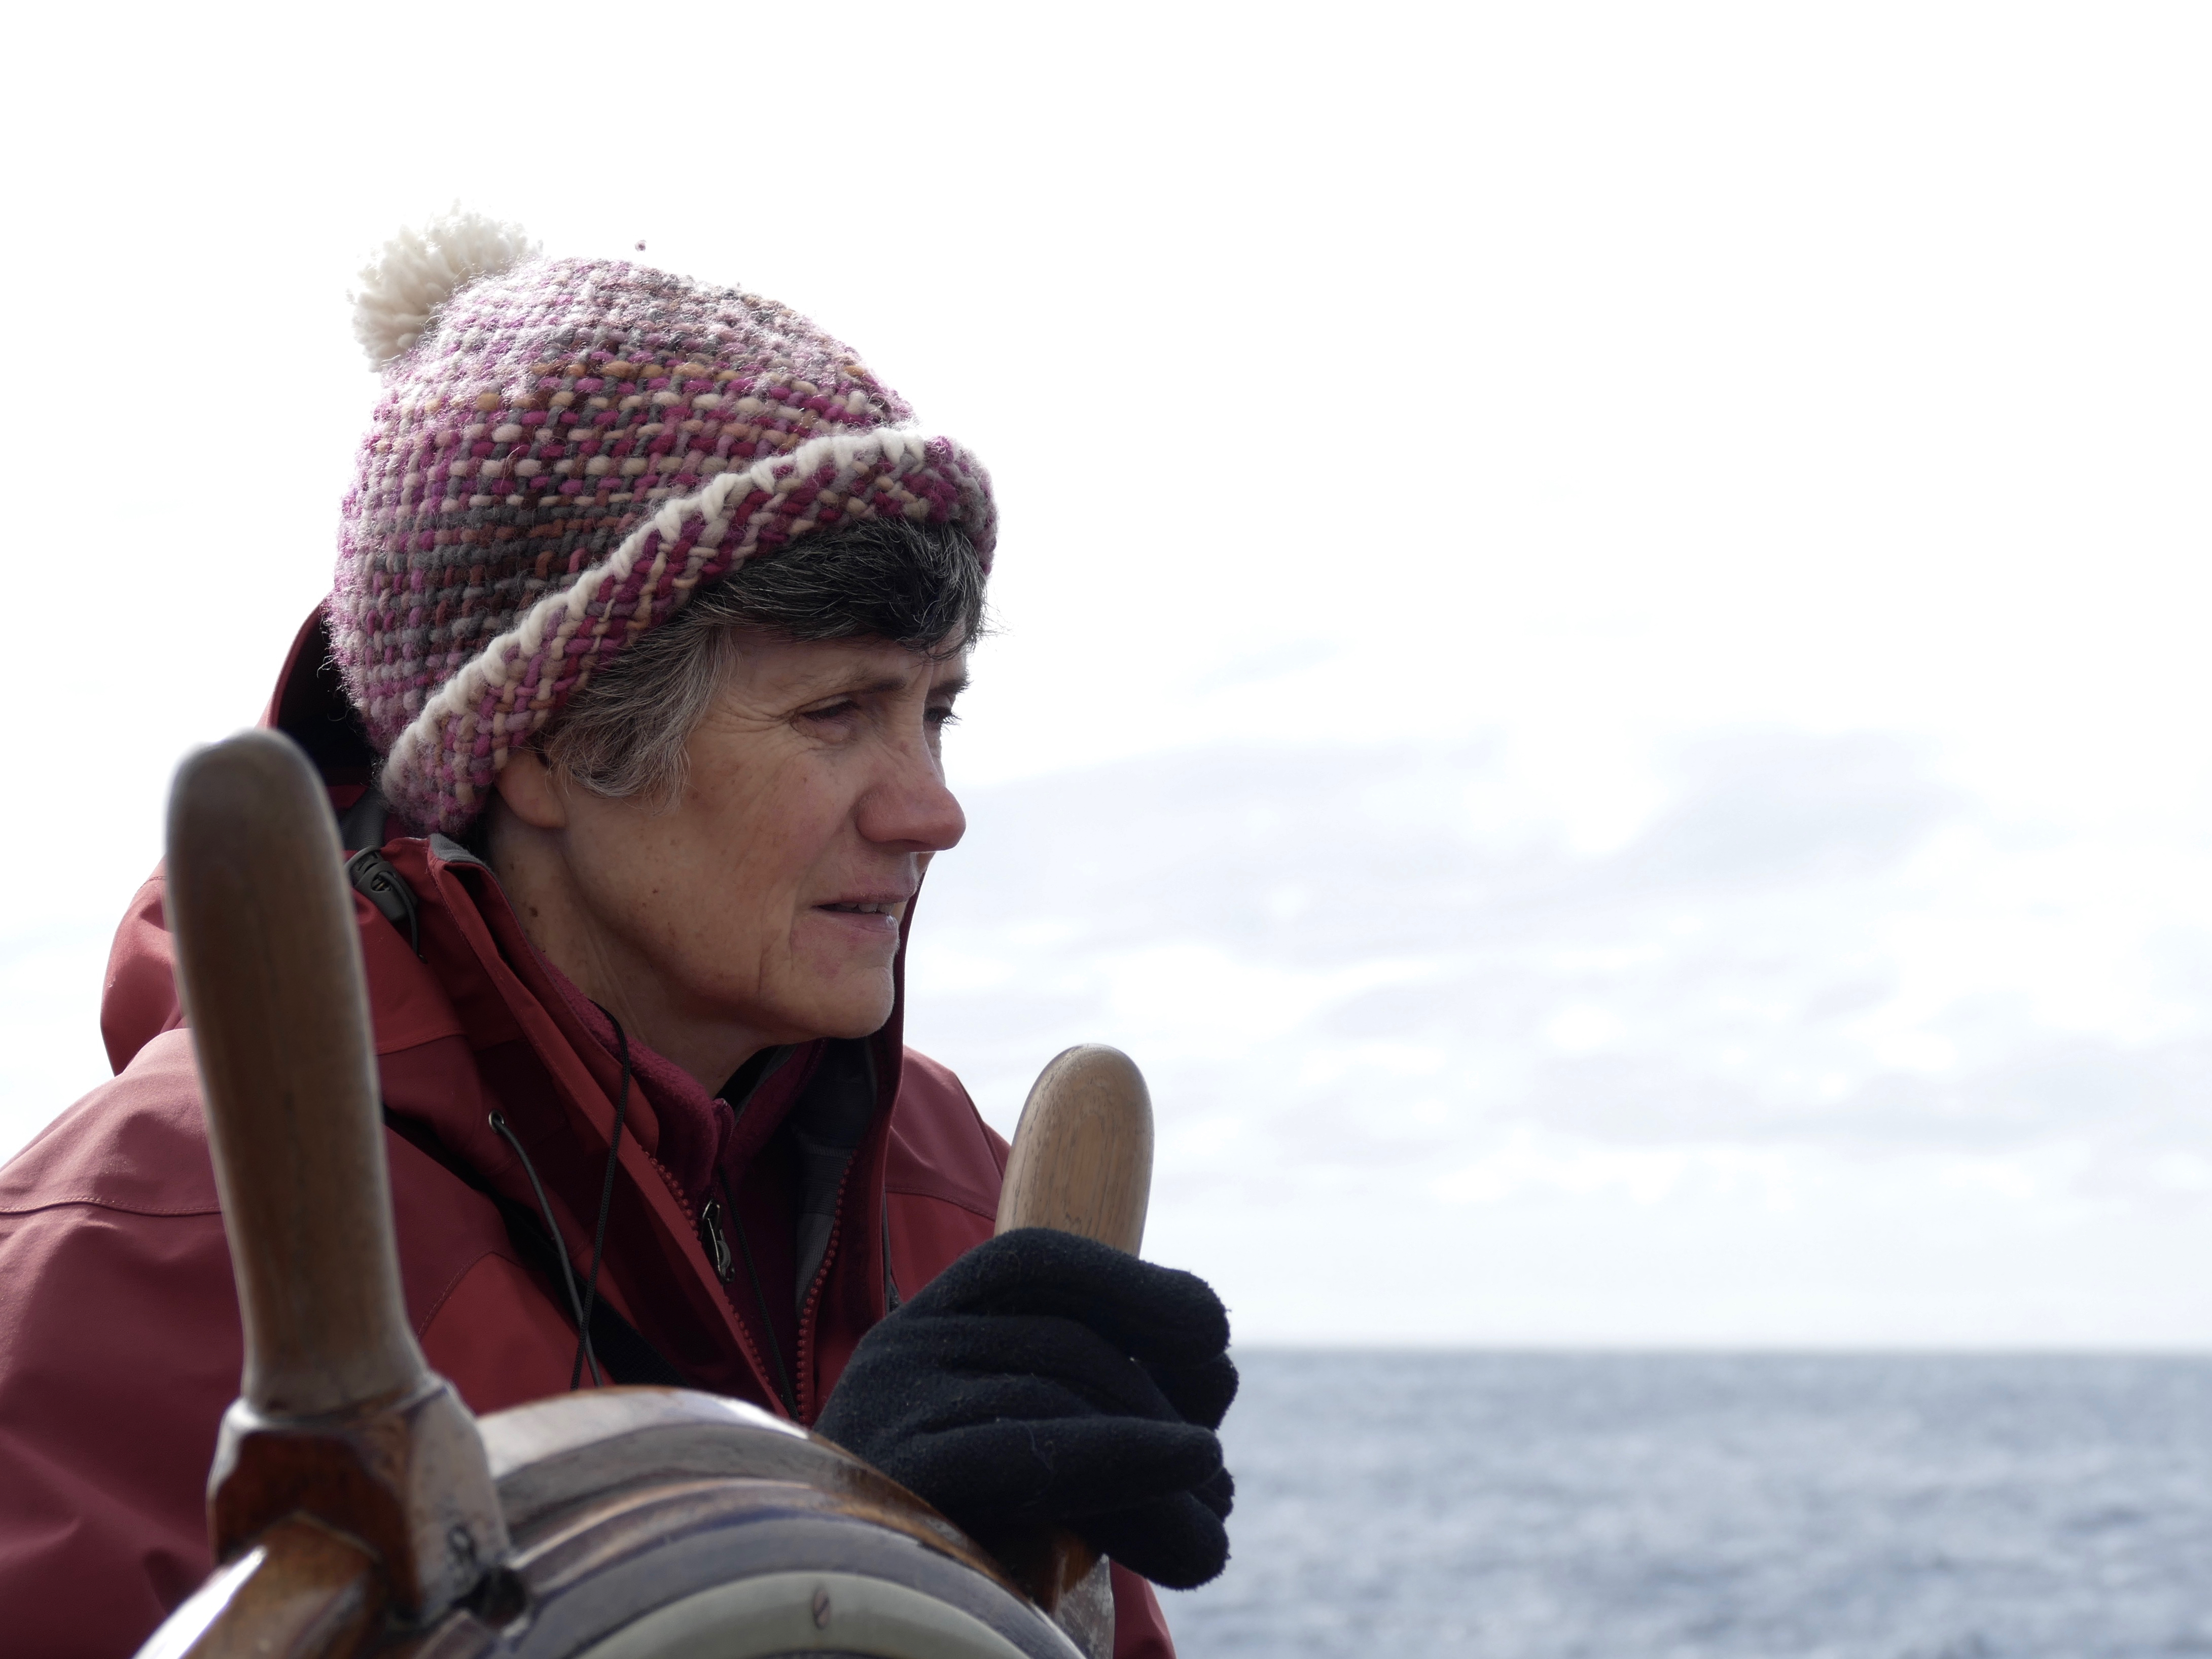 Sharon at the helm on Europa